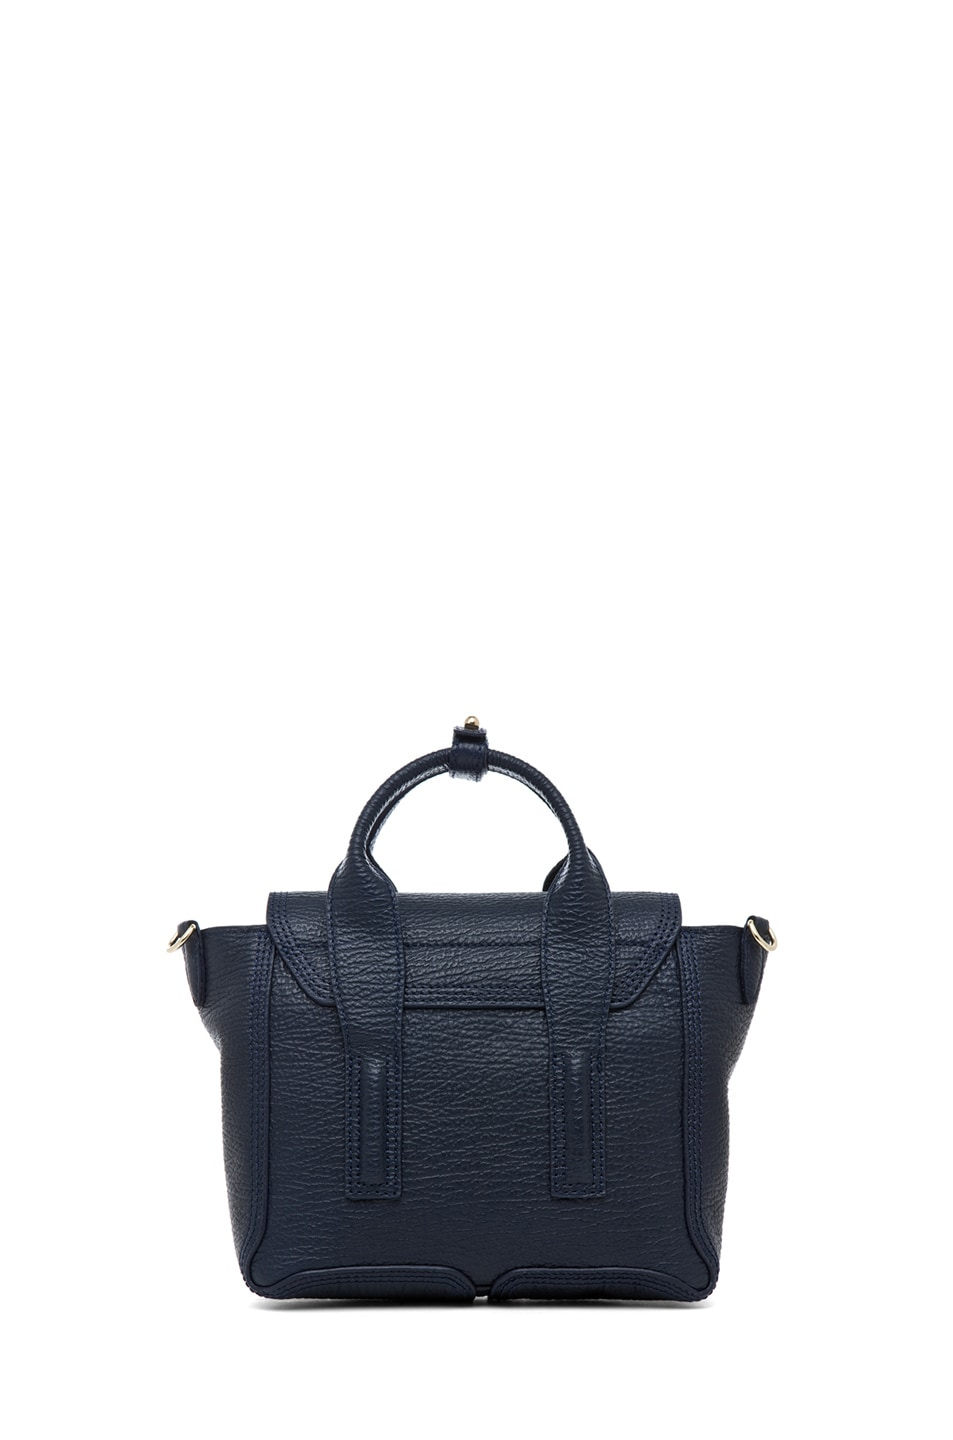 Image 2 of 3.1 phillip lim Mini Pashli Satchel in Ink